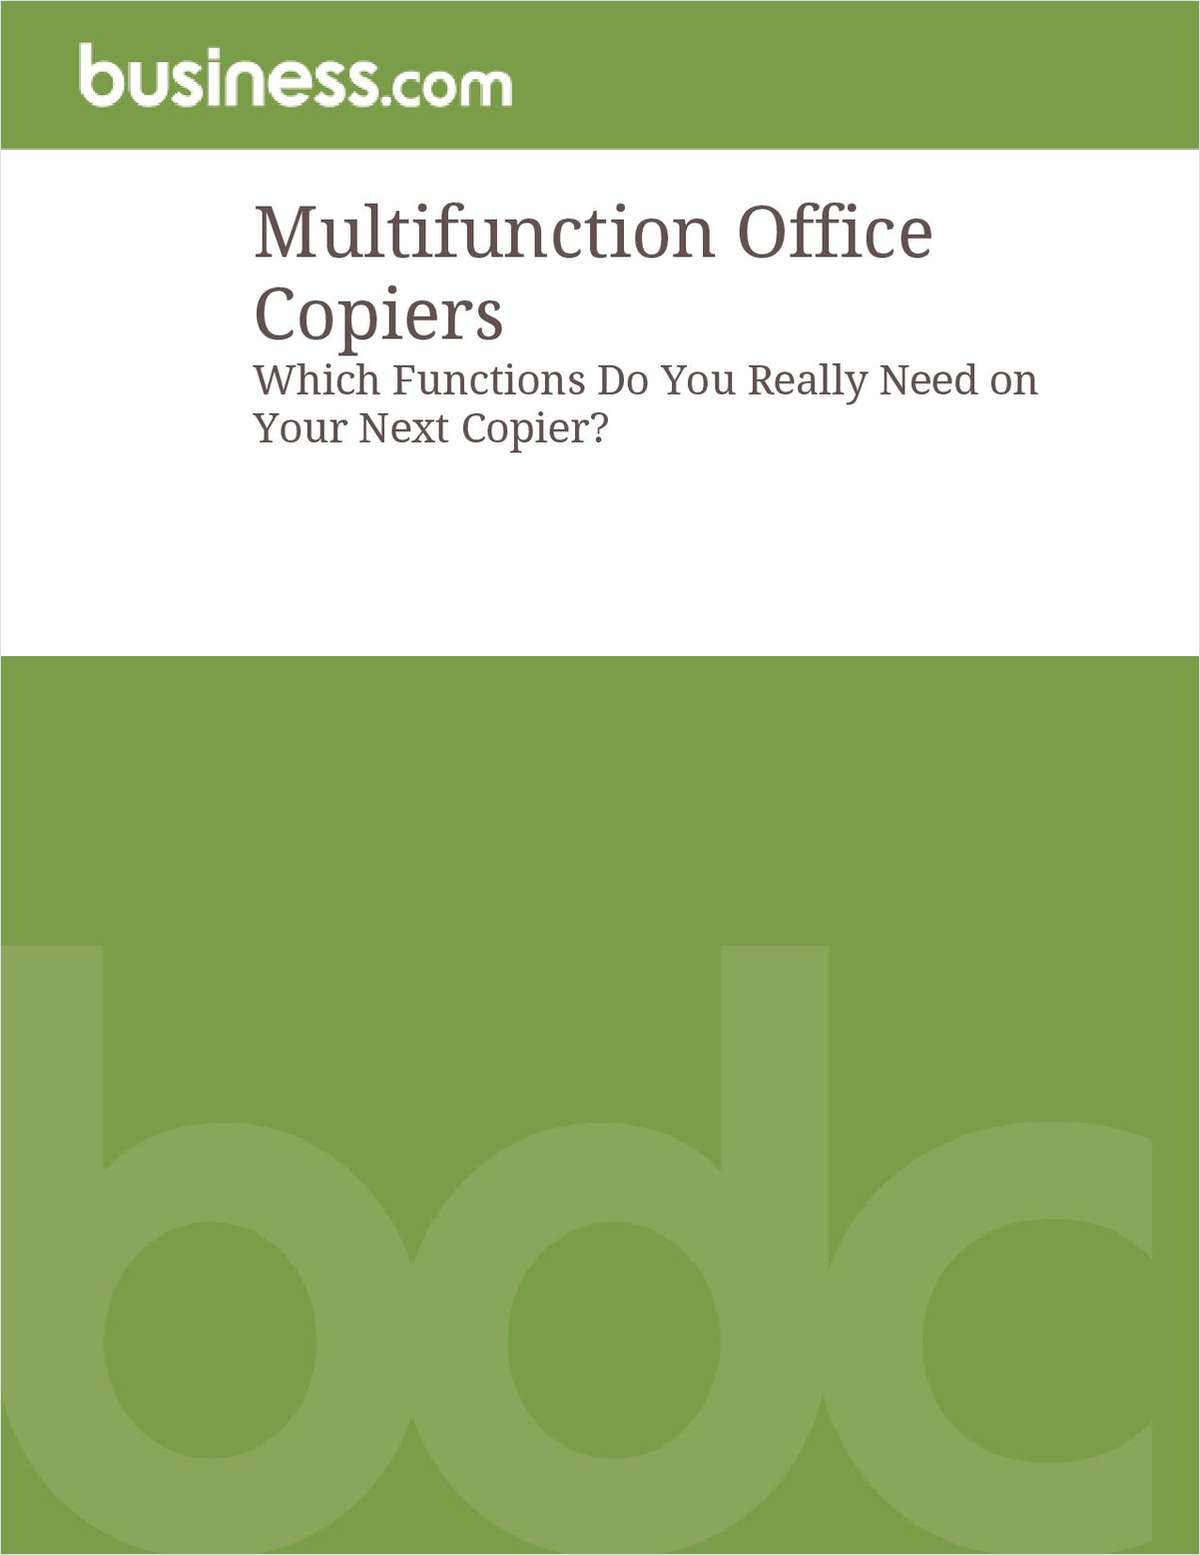 Multifunction Office Copiers:  Which Functions Do You Really Need on Your Next Copier?